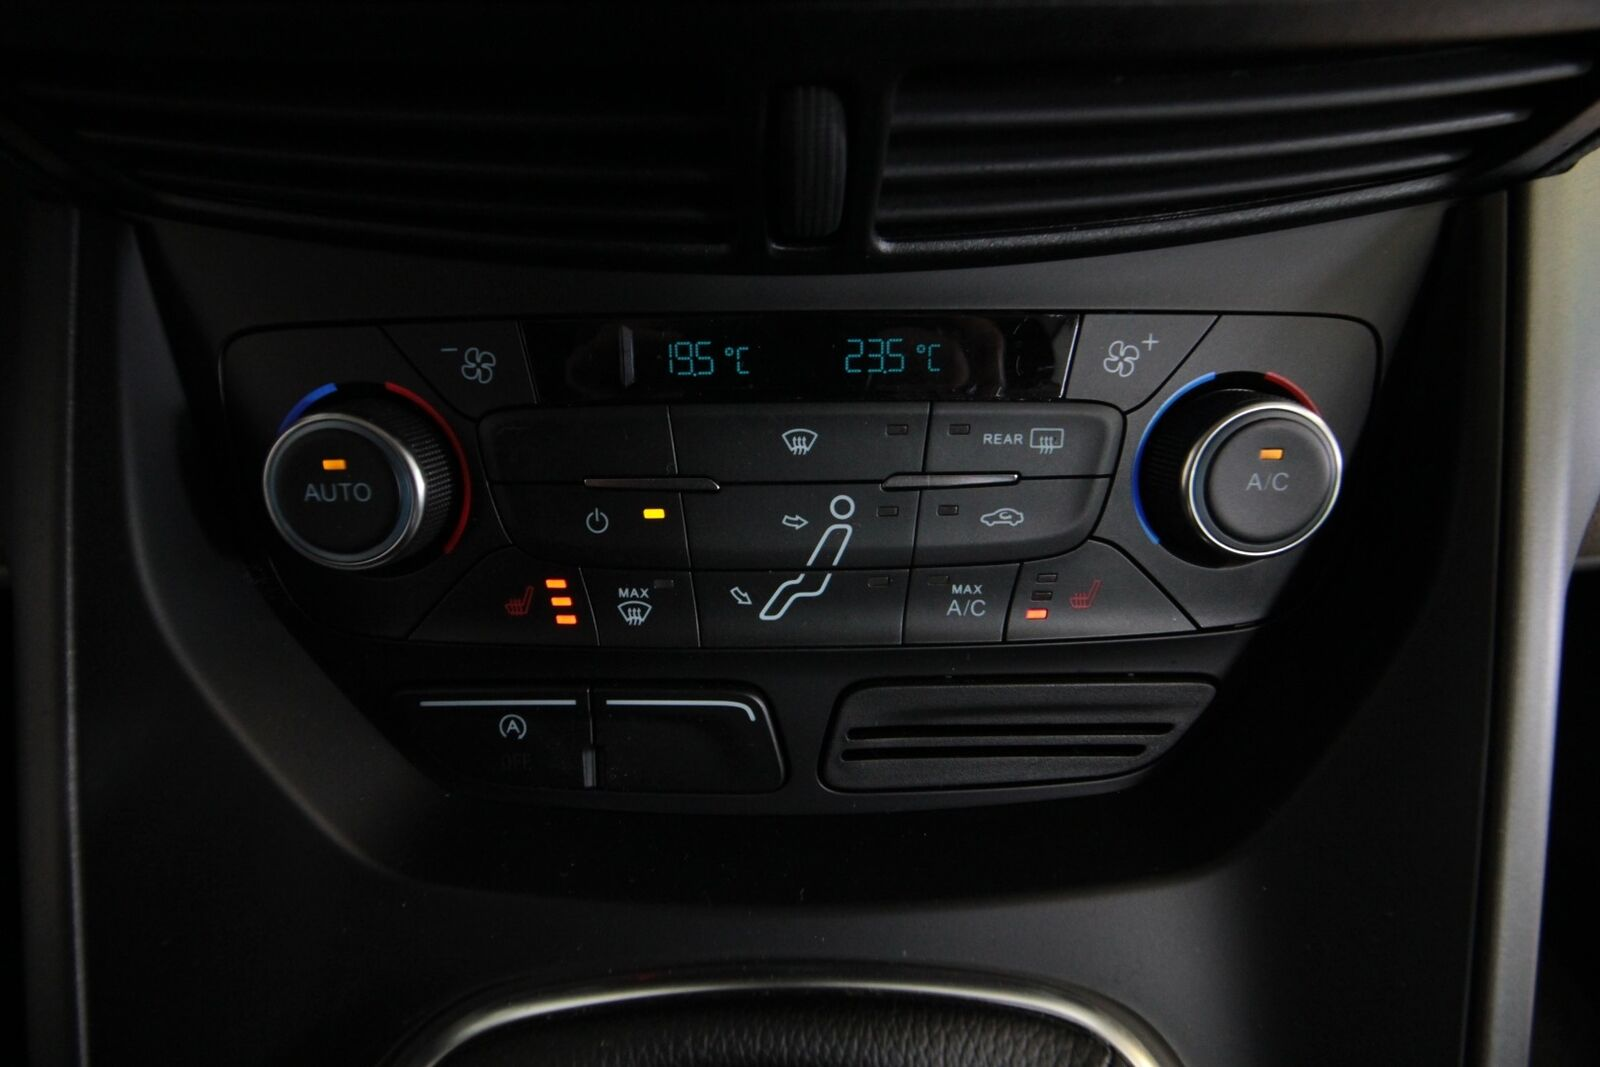 Ford Grand C-MAX TDCi 150 Business